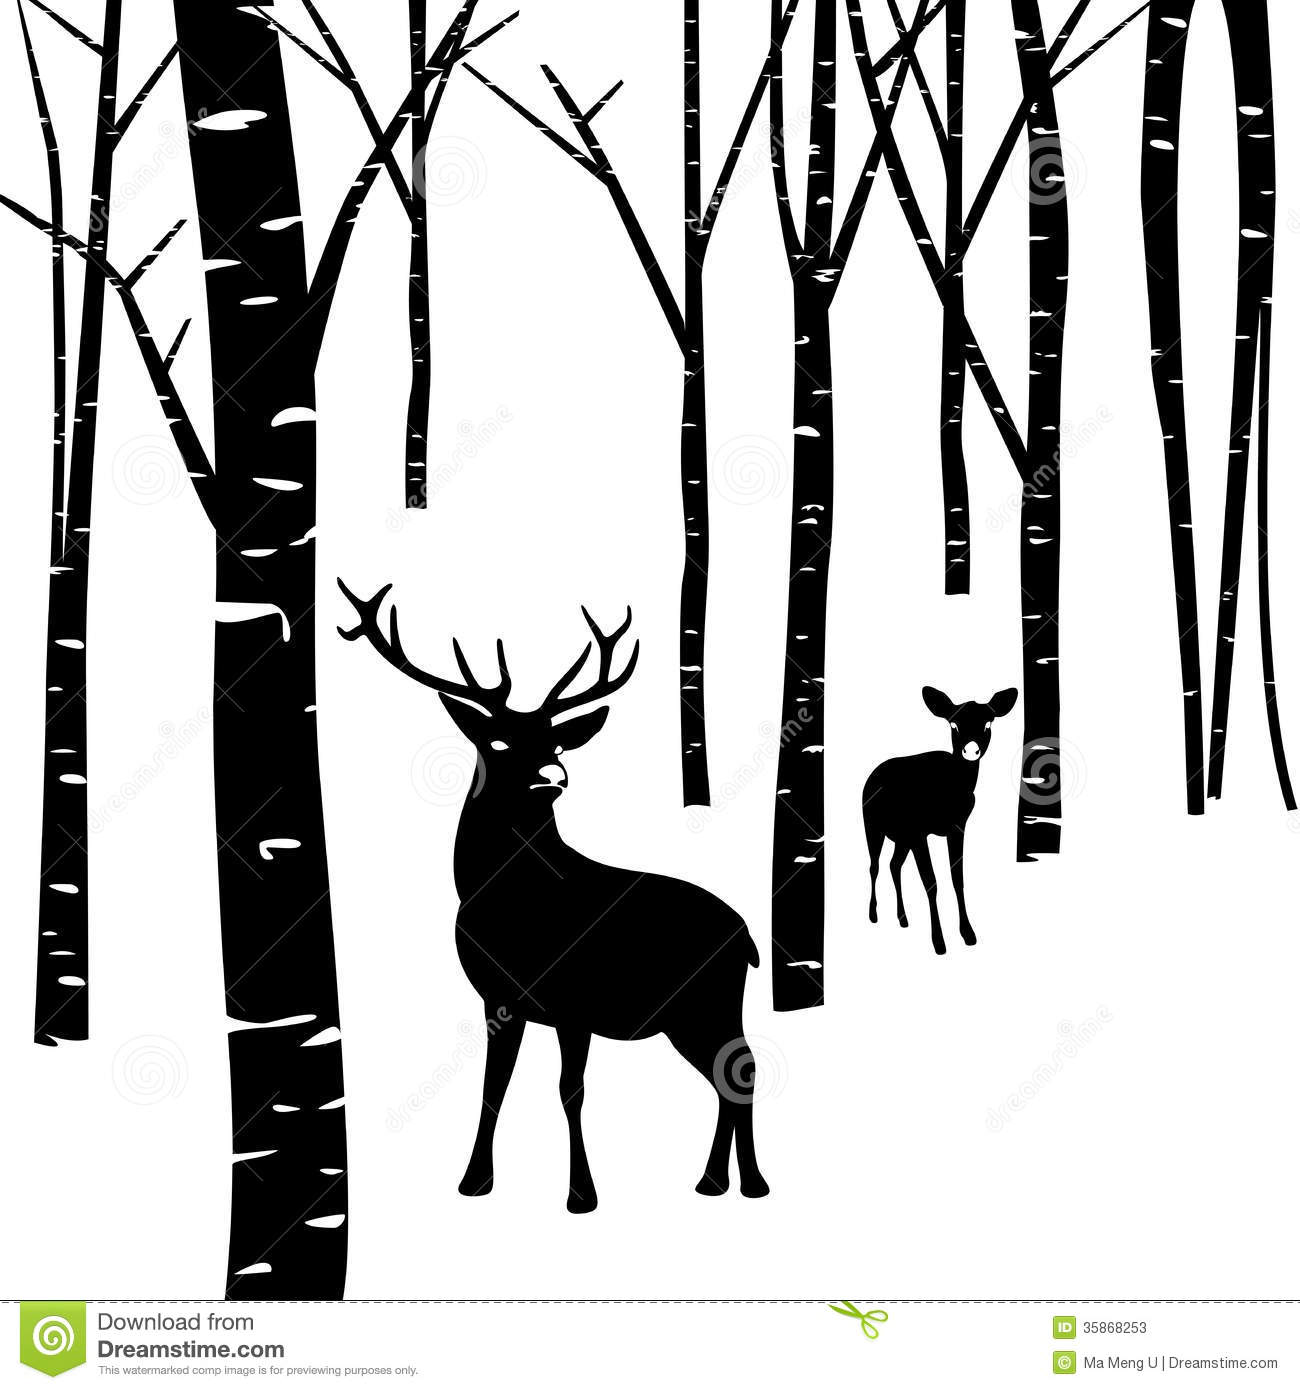 Cartoon Volleyball together with 565342559445990525 in addition Stock Photos Couples Deer Forest Walking Around Winter Image35868253 as well Scorpion tattoo also Stock Illustration Bus Drawing Passenger Image50683637. on 2d drawings